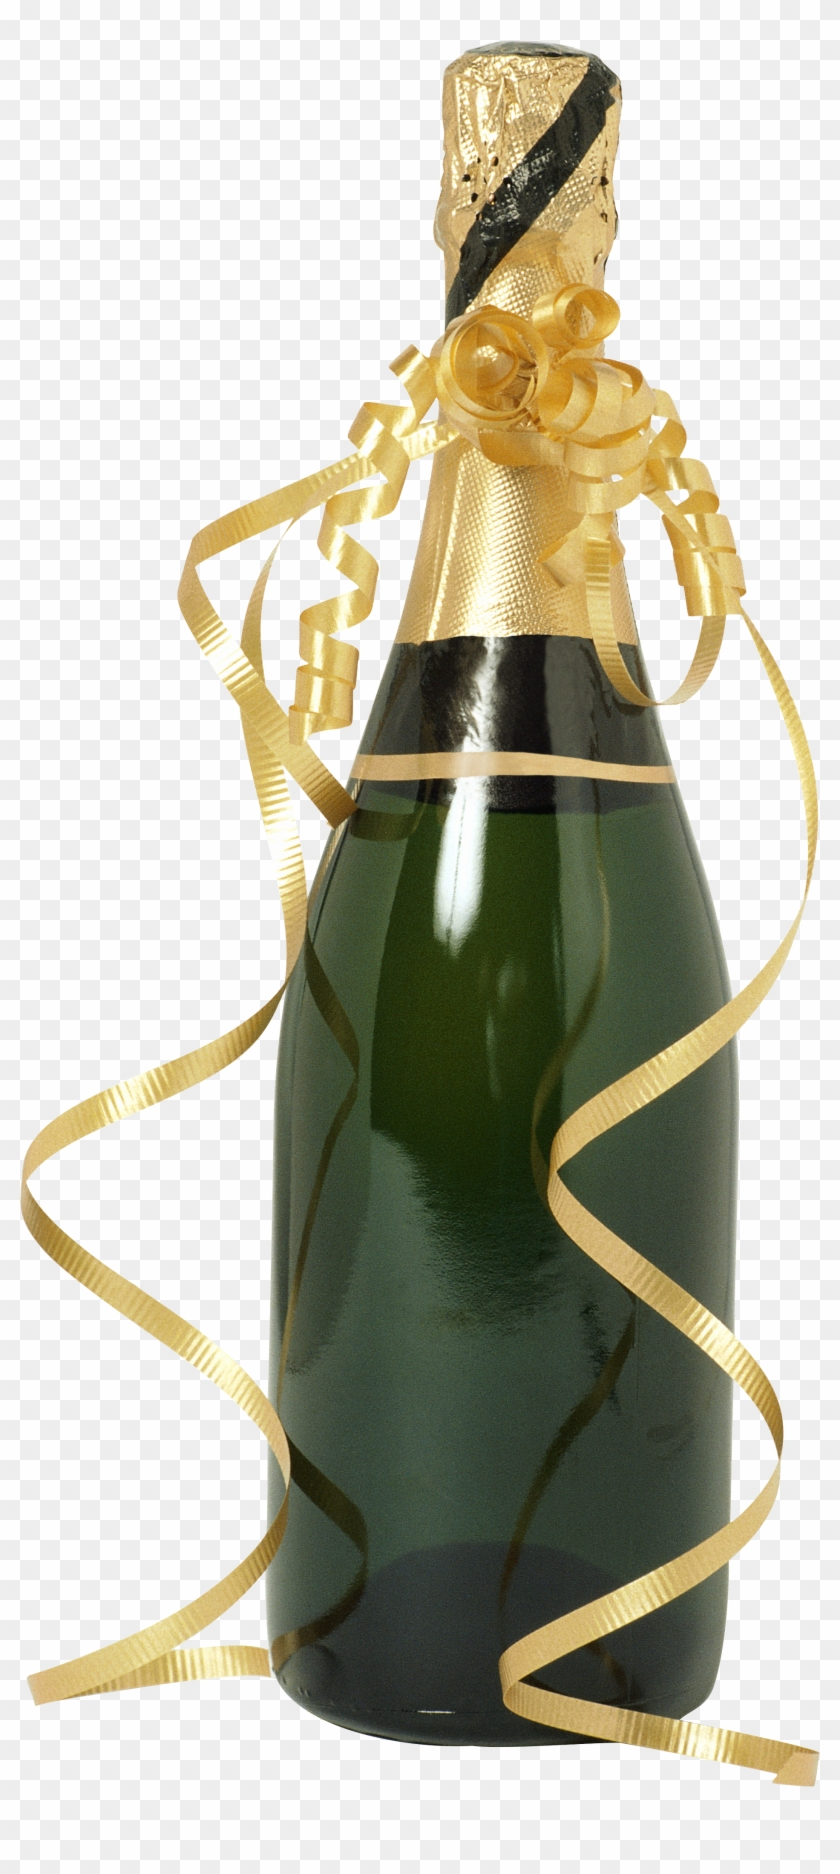 Champagne Bottle - Champagne Bottle And Glasses Clipart #443380